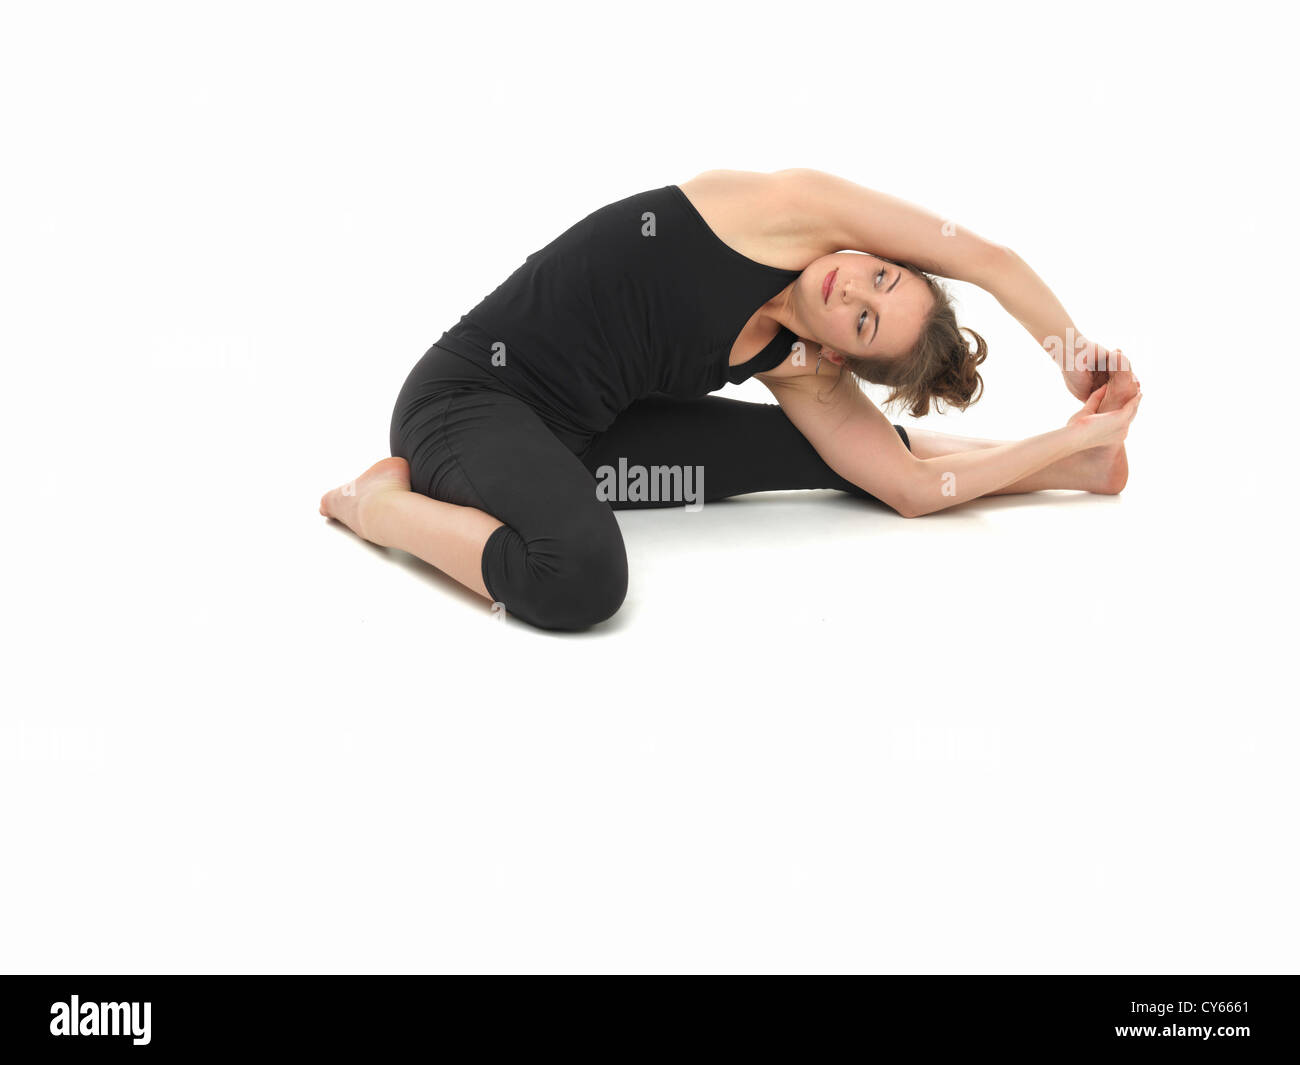 difficult advanced yoga pose by attractive female, on white background, viewed from the front - Stock Image